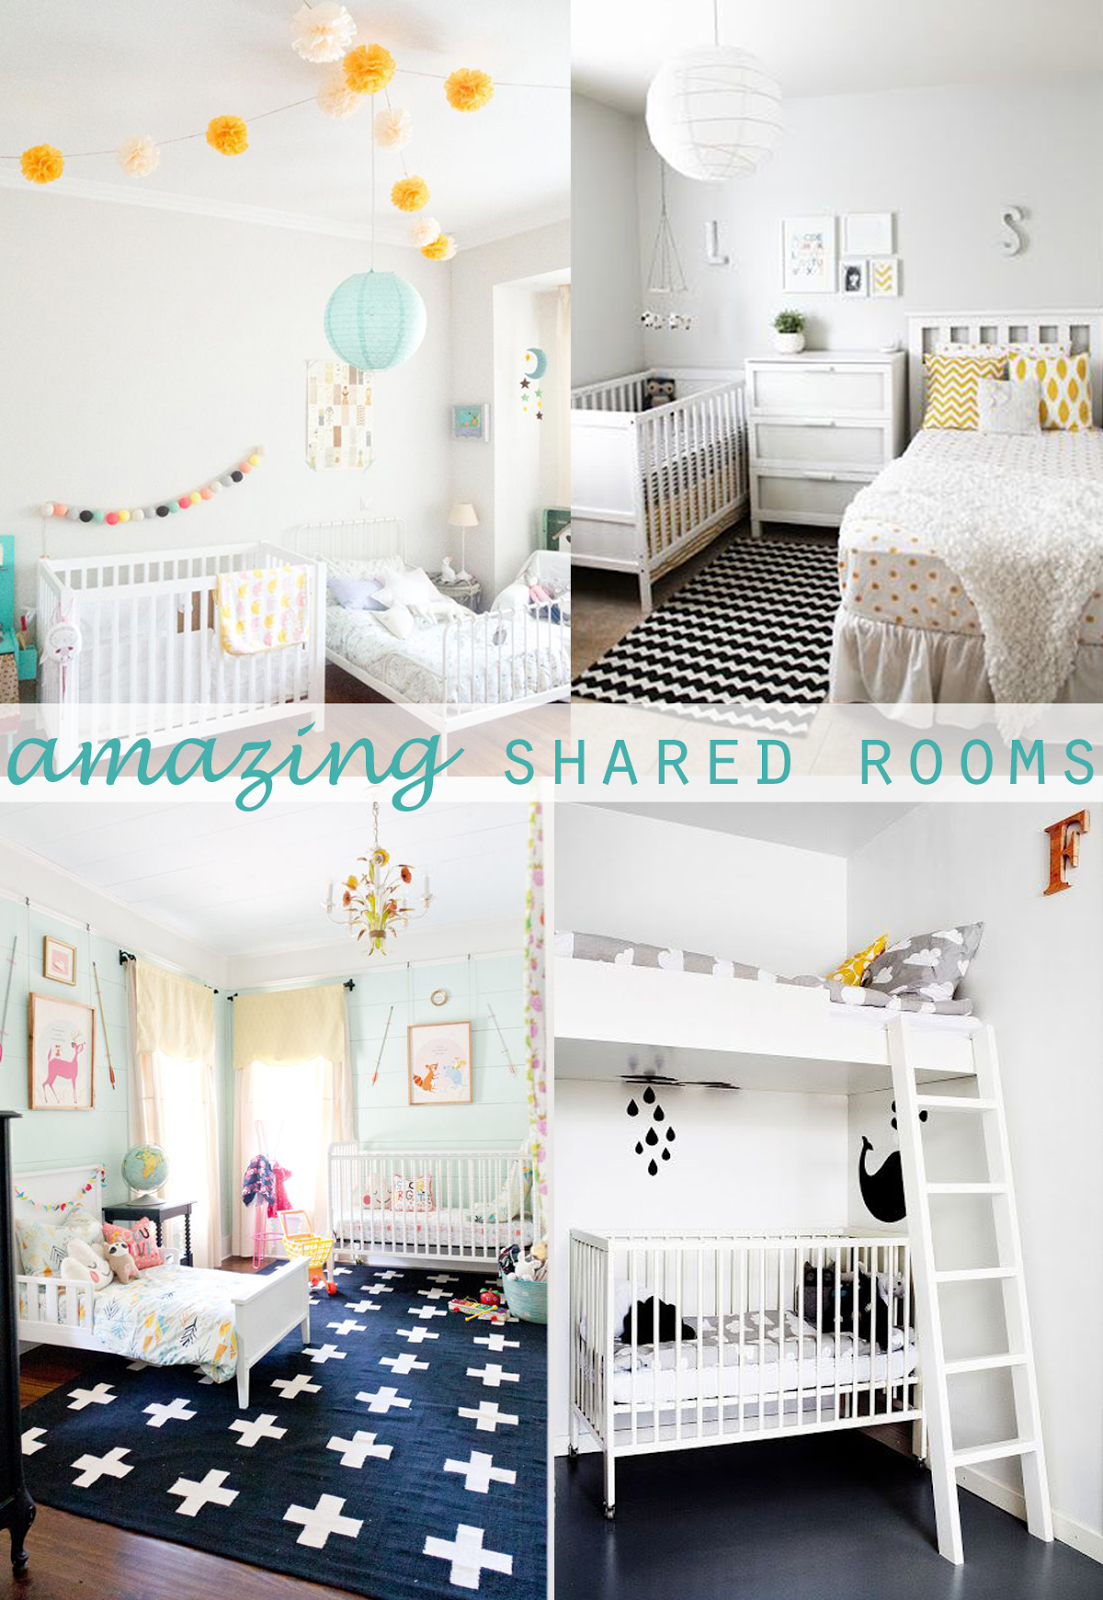 Baby Boy And Girl Room: Amazing+shared+kids+children+shared+room+bedroom+ideas.png